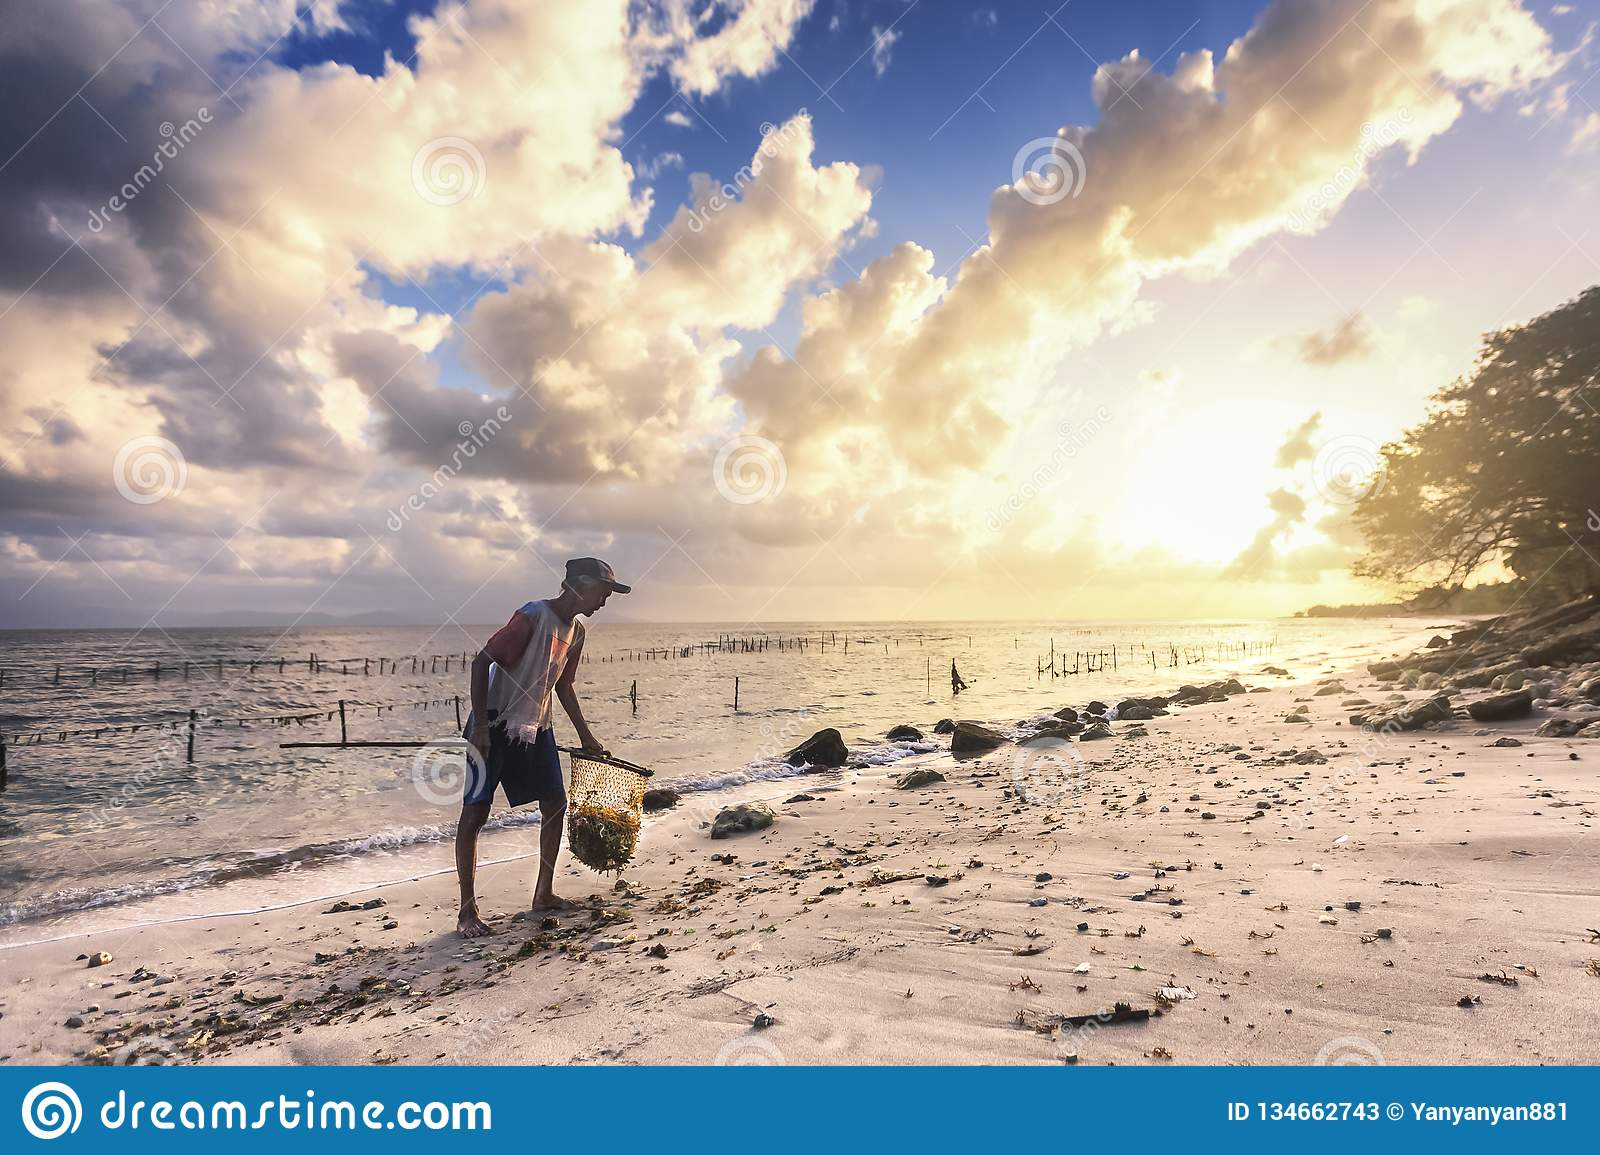 Poverty woman picks up seaweed along the beach in Bali, indonesia